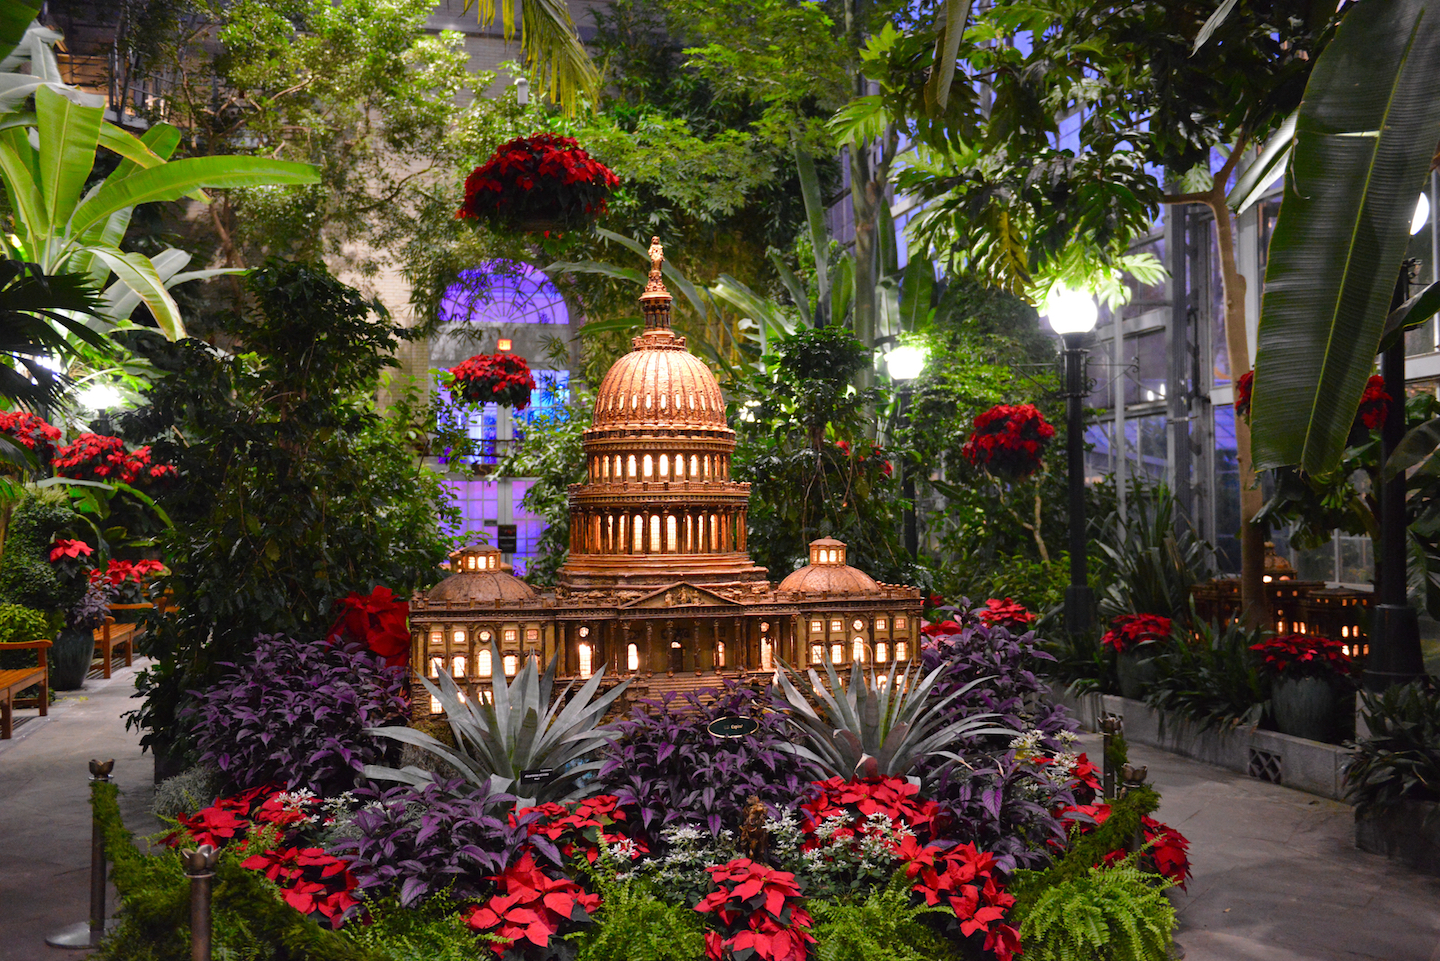 holiday show with poinsettias and U.S. Capitol building made from plant parts